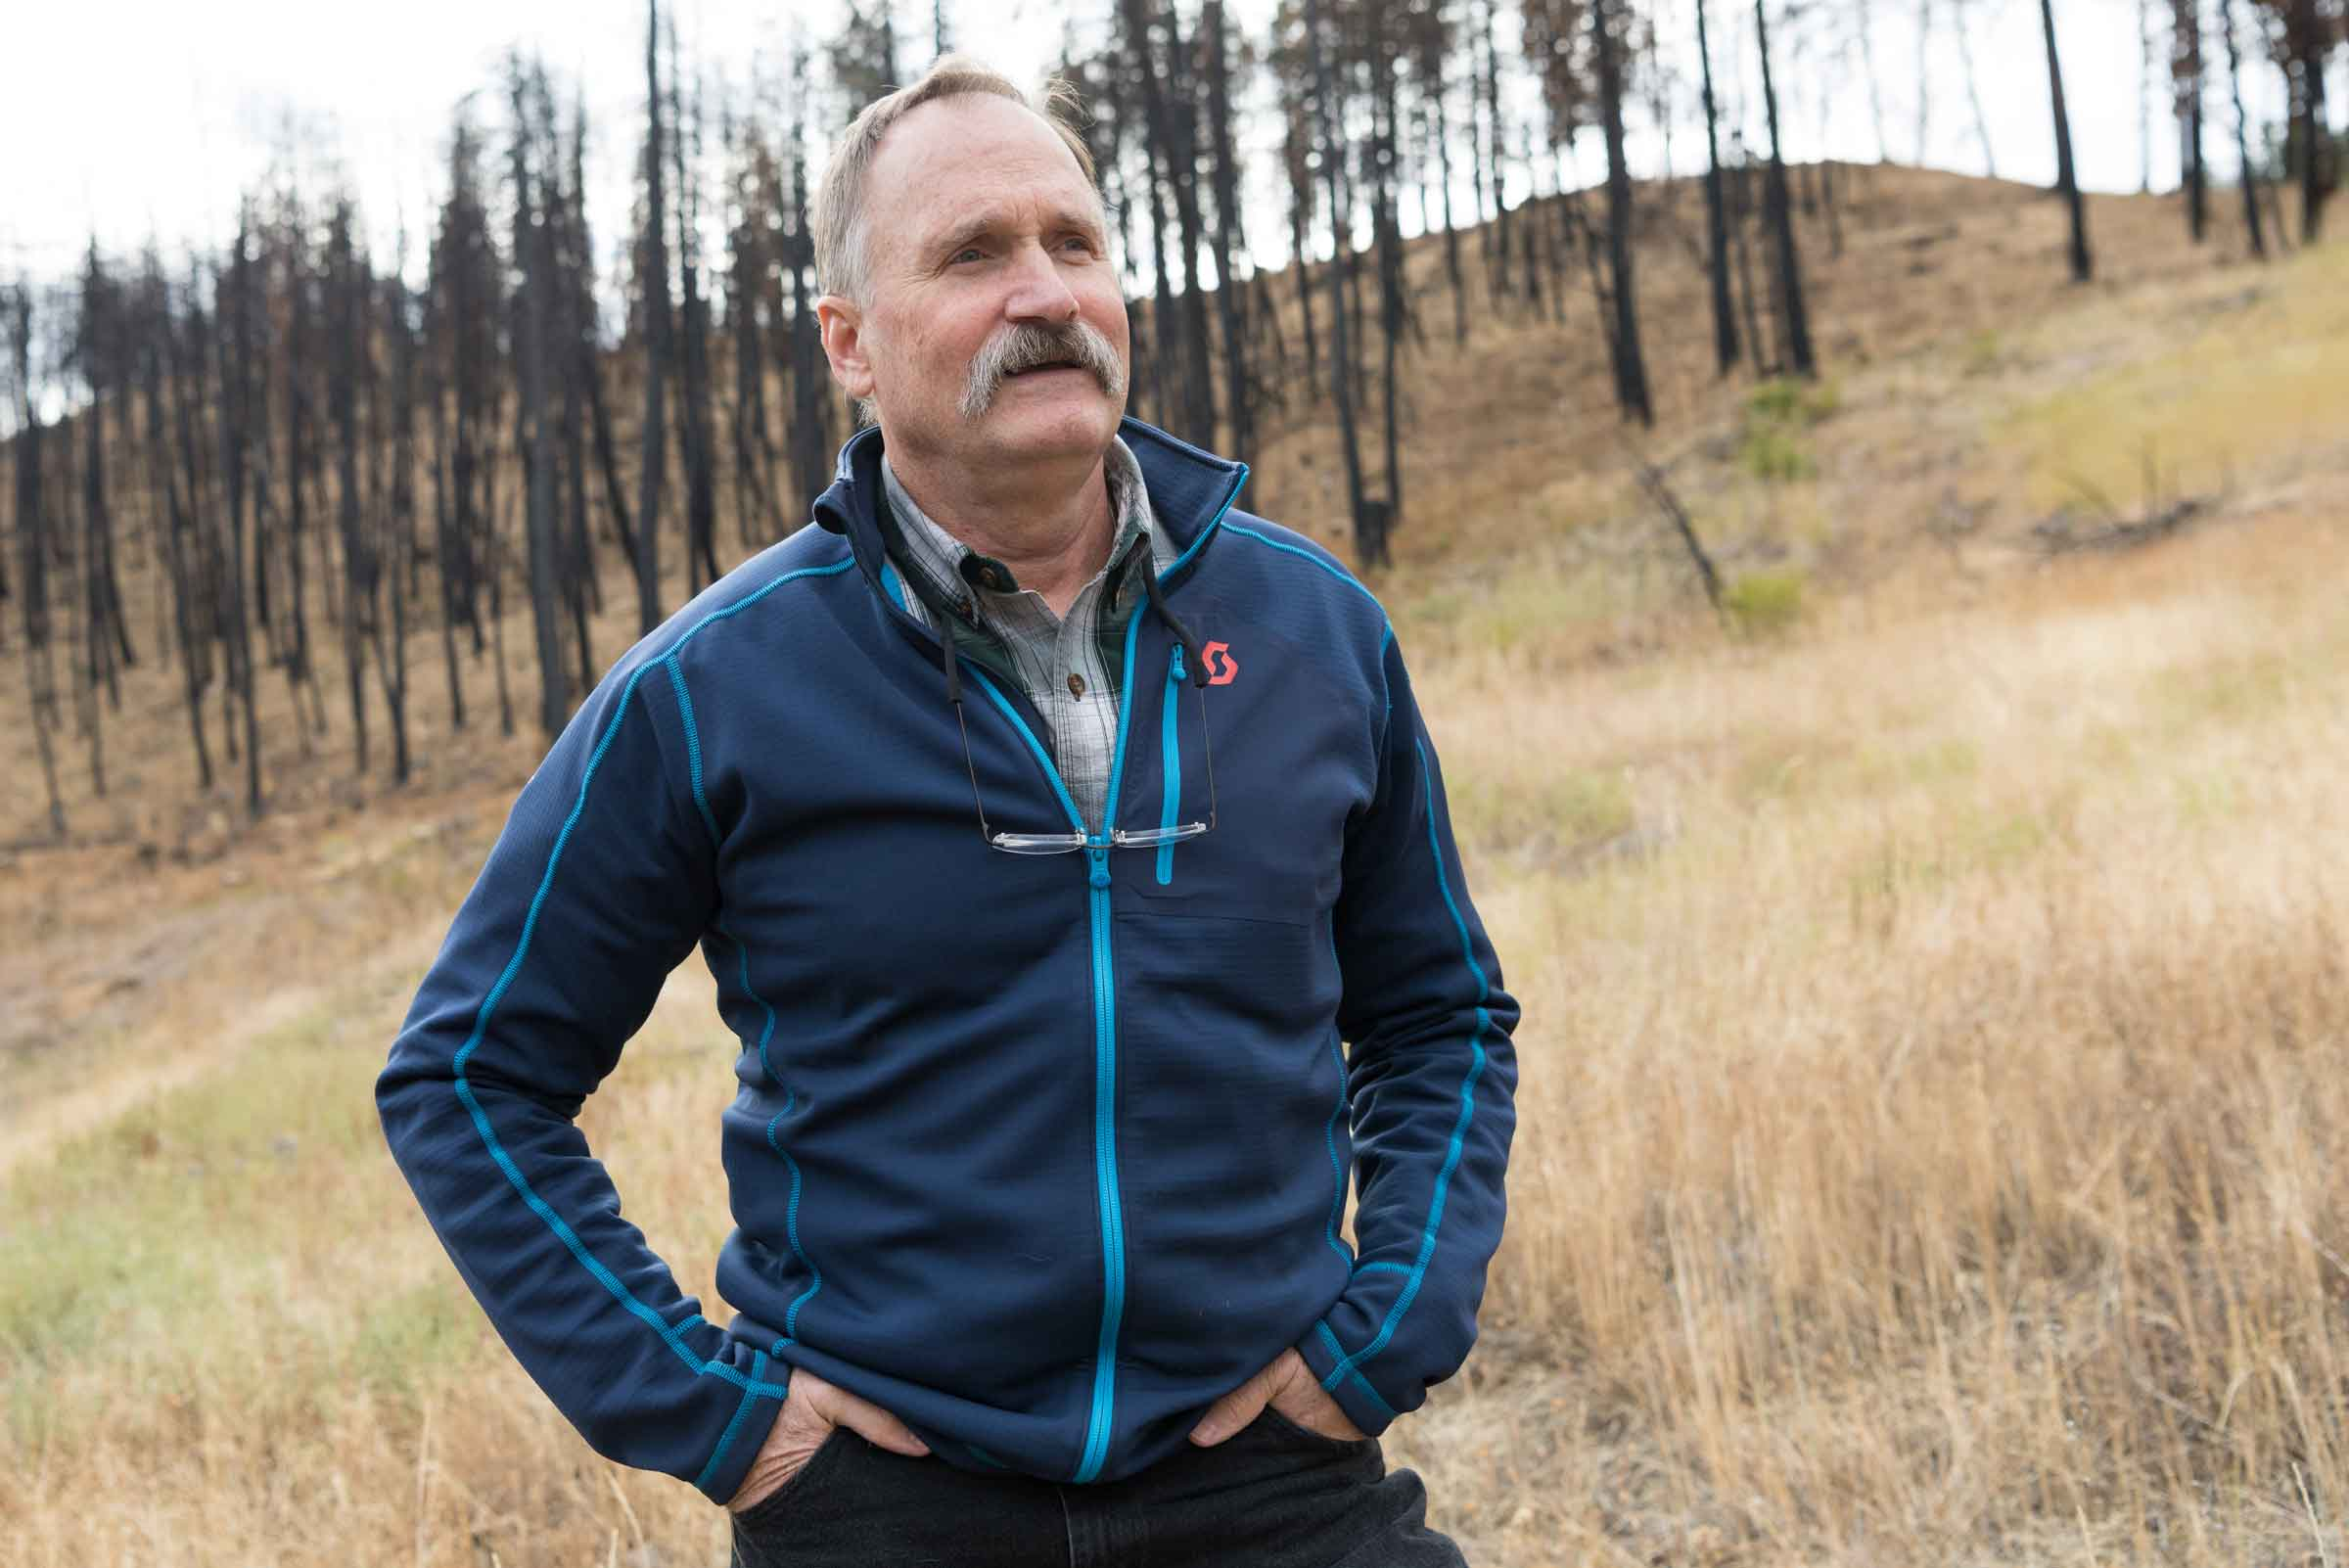 """Paul Hessburg ponders solutions to the megafire epidemic as he stands on land burned by the 2015 Canyon Creek Complex megafire south of John Day. """"Burn under the right conditions is a big core of the answer,"""" he says. """"We're not going to [mechanically] thin our way out of this problem. There isn't enough time. It's changing the landscape too fast."""" (Adam Bacher)"""